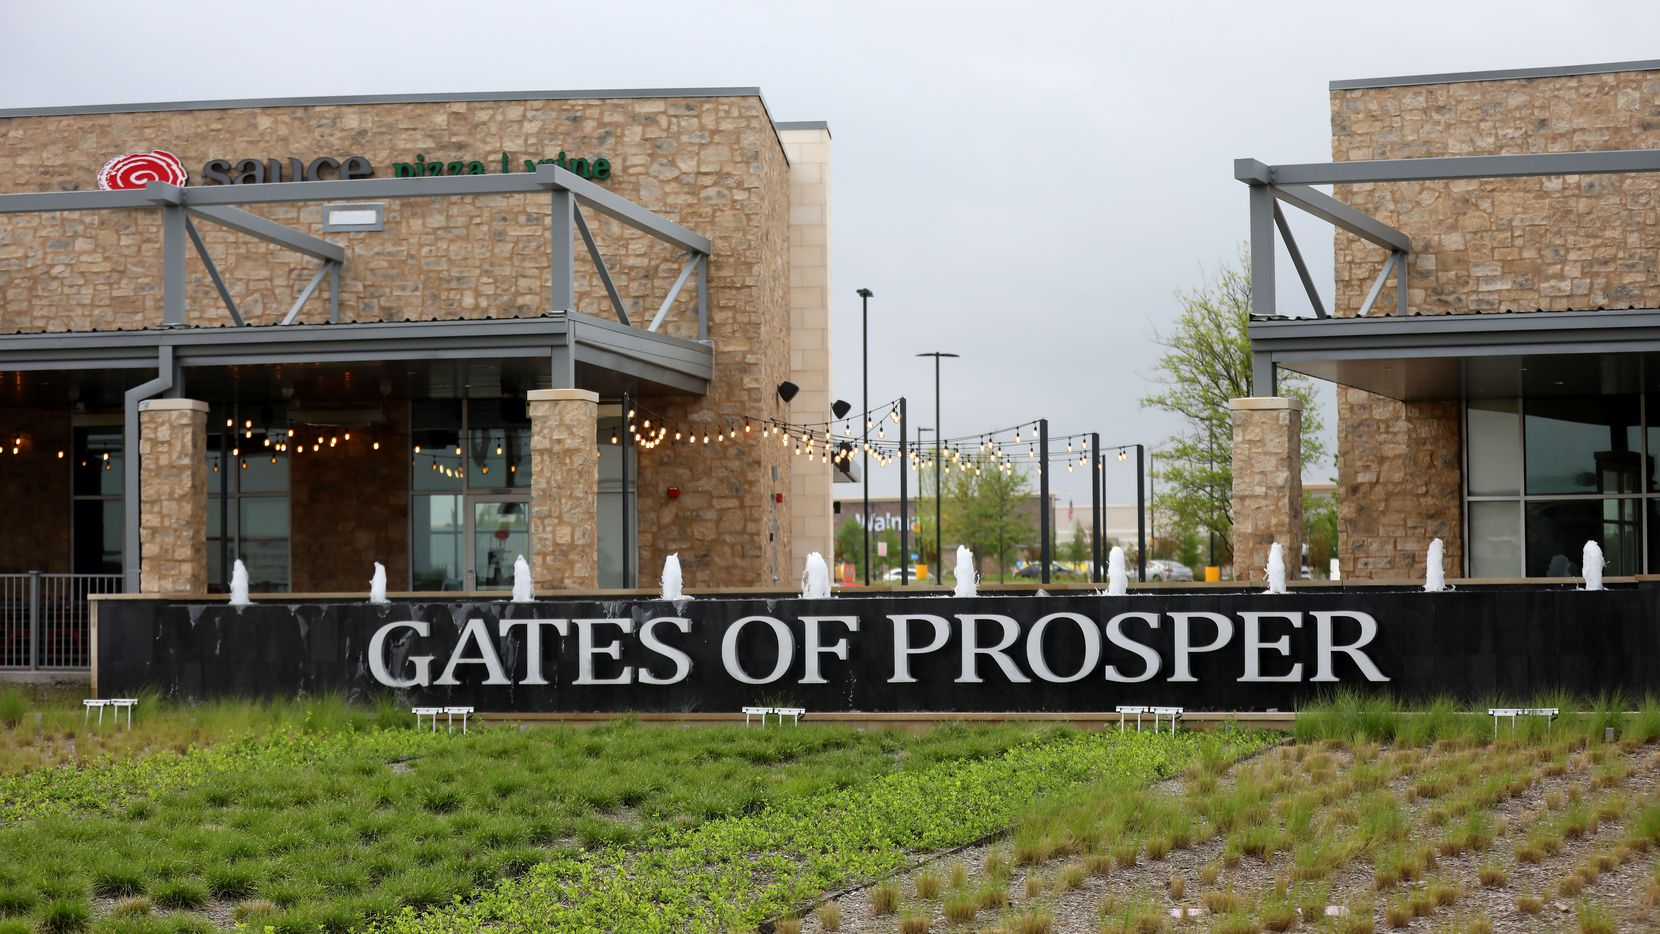 The Gates of Prosper shopping center will have almost 800,000 square feet of retail and restaurant space when the next phase is completed.